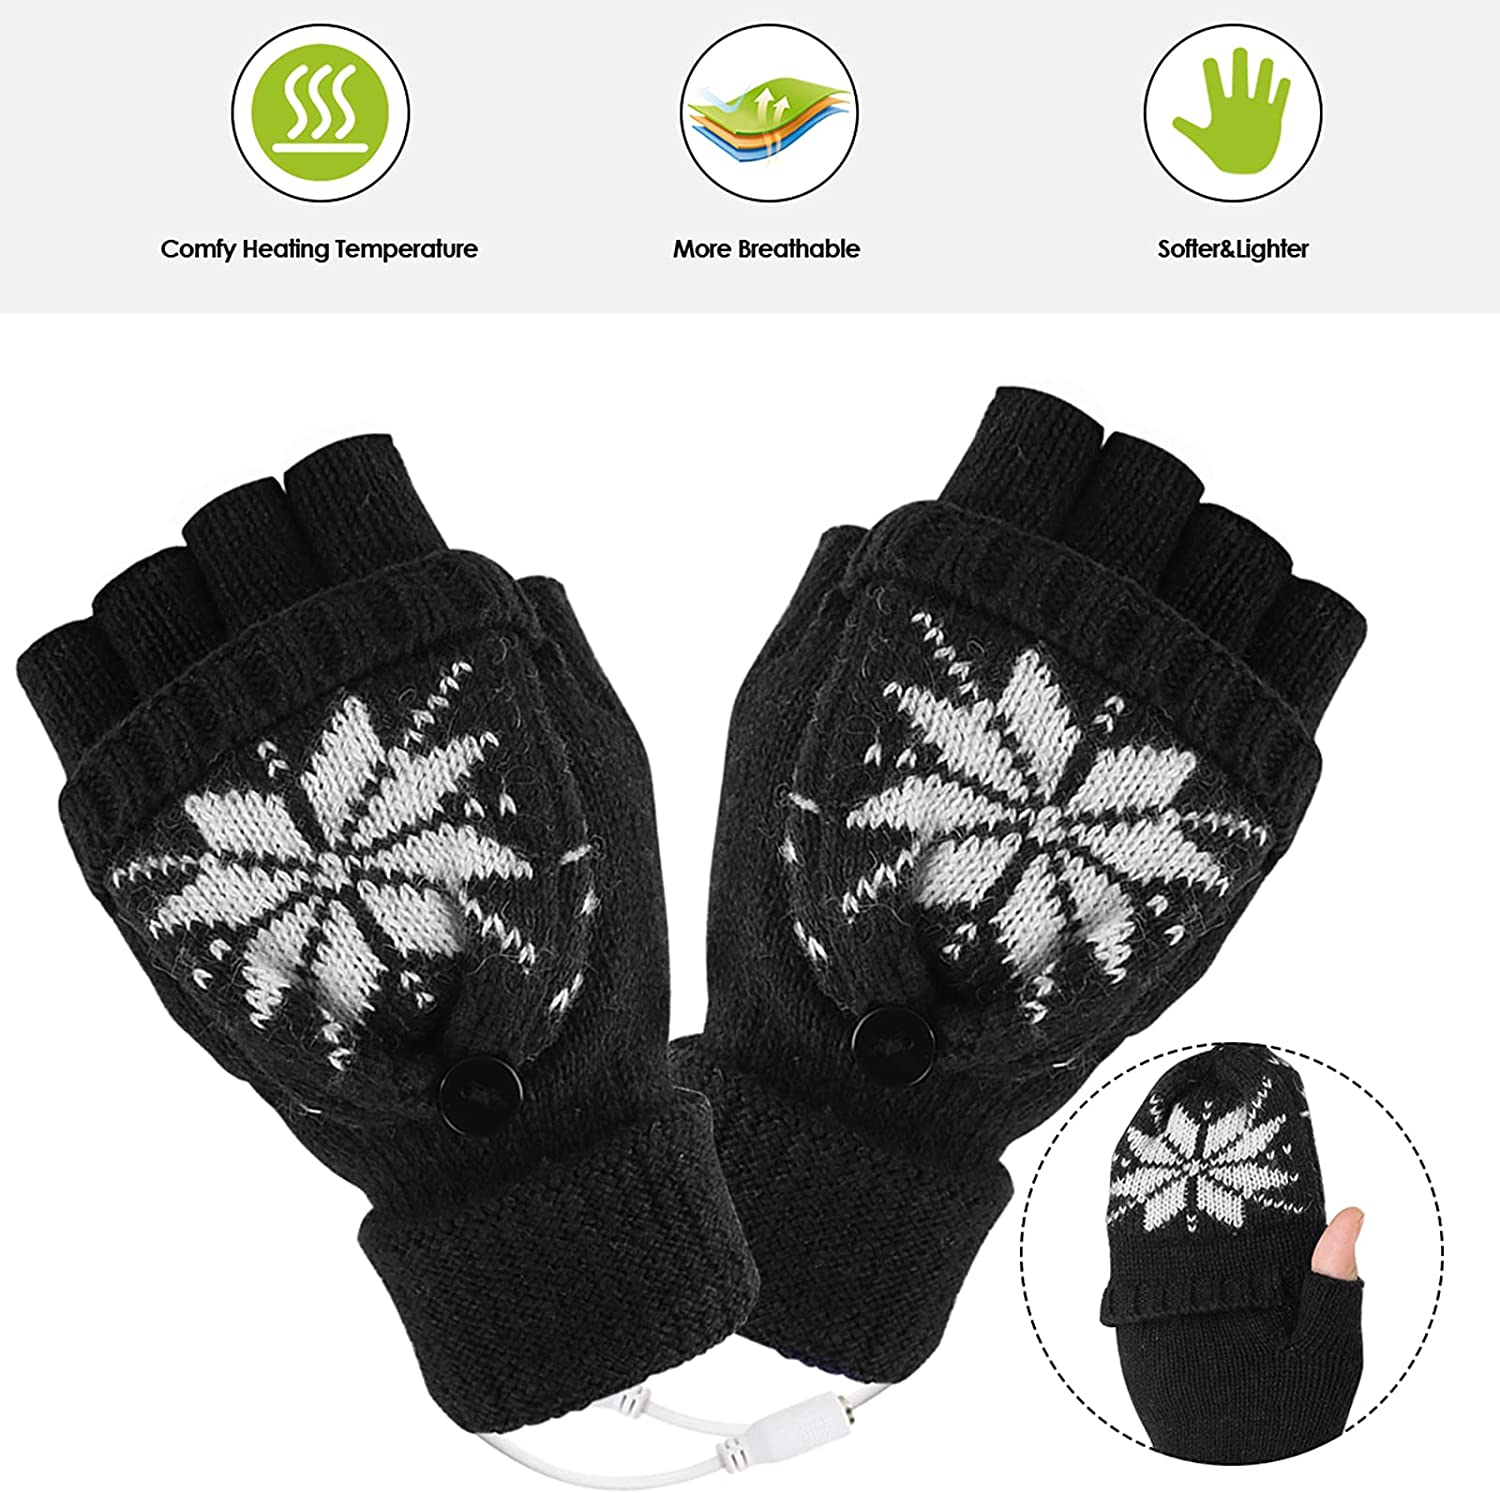 Xinapy Unisex USB Heated Gloves, Winter Warm Full& Half Fingers Warmer Knitted Laptop Gloves Mitten with Finger Cover for Men and Women